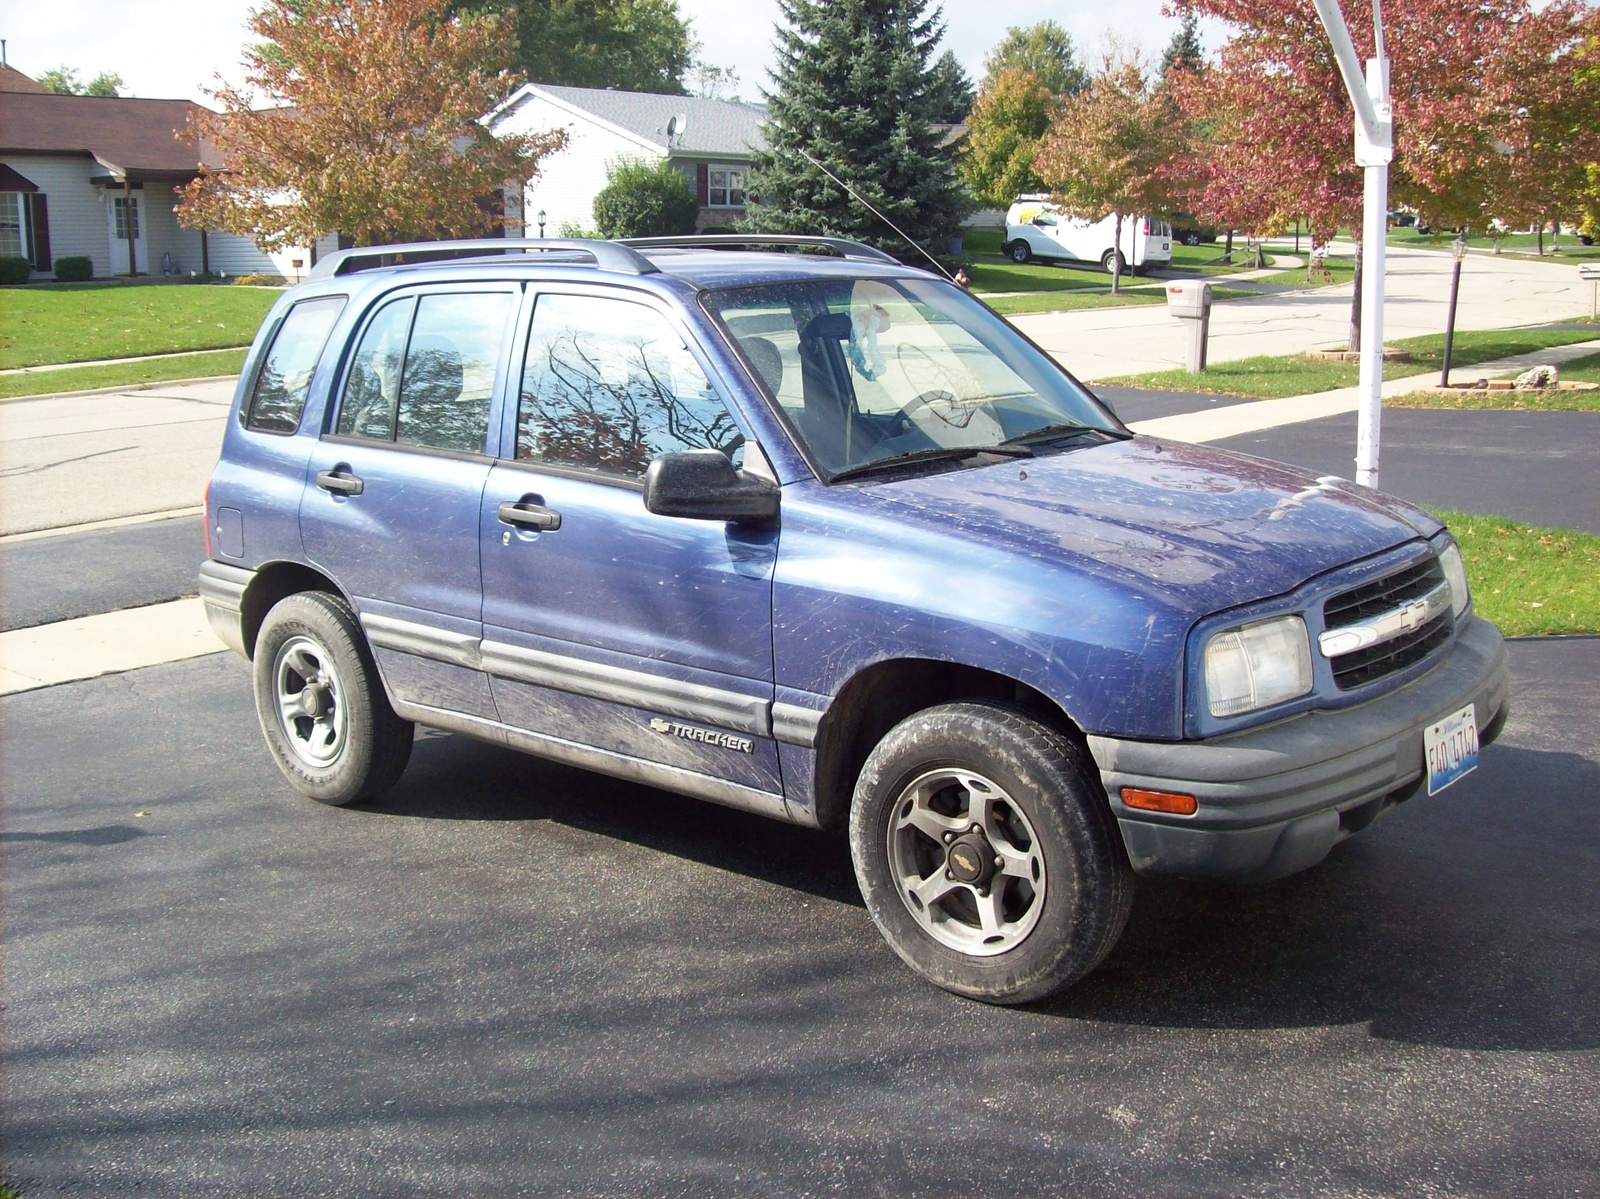 1999 Chevrolet Tracker 4 Dr STD 4WD SUV picture